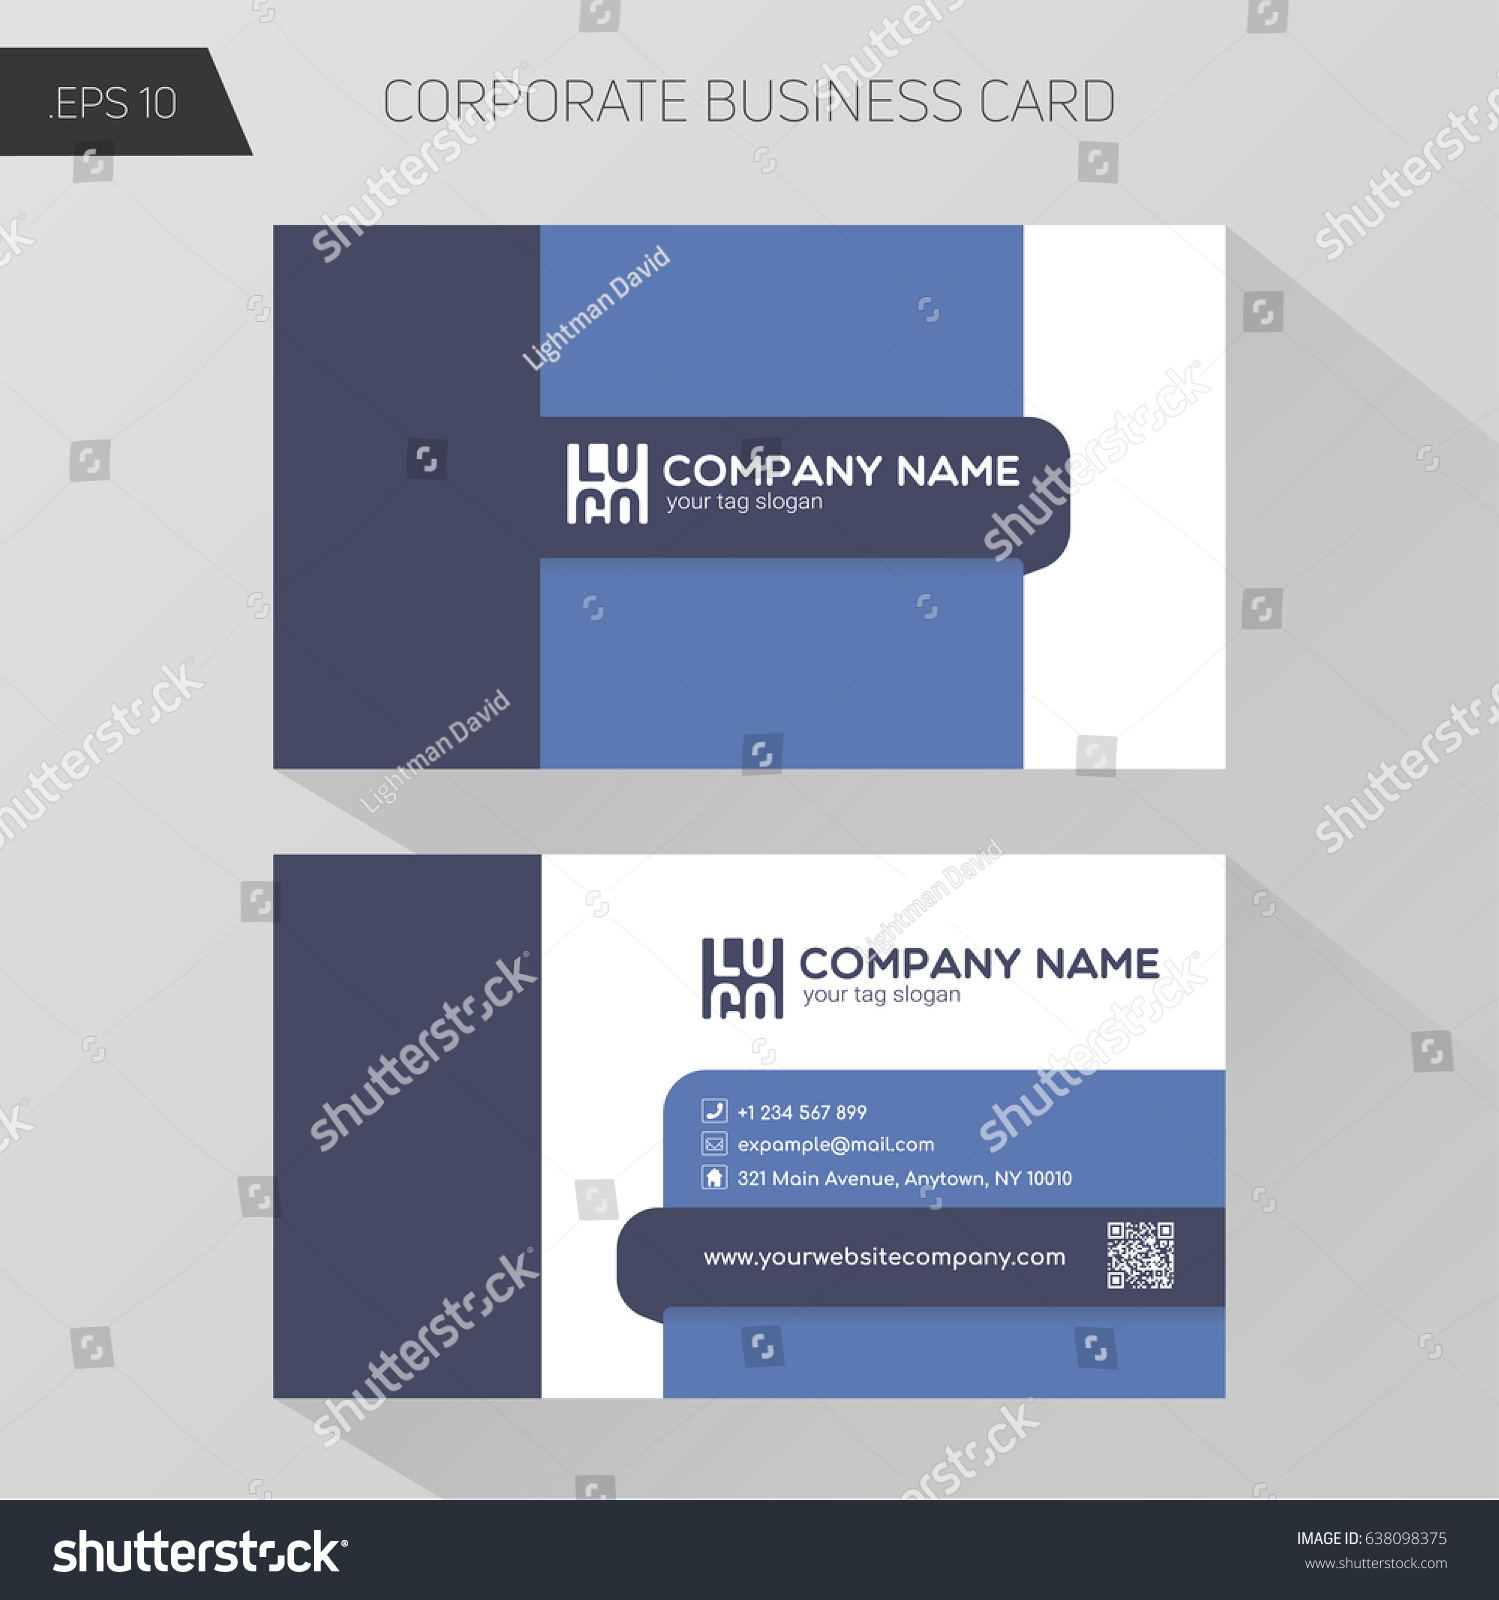 Corporate Business Card Template Front Bottom Stock Vector ...